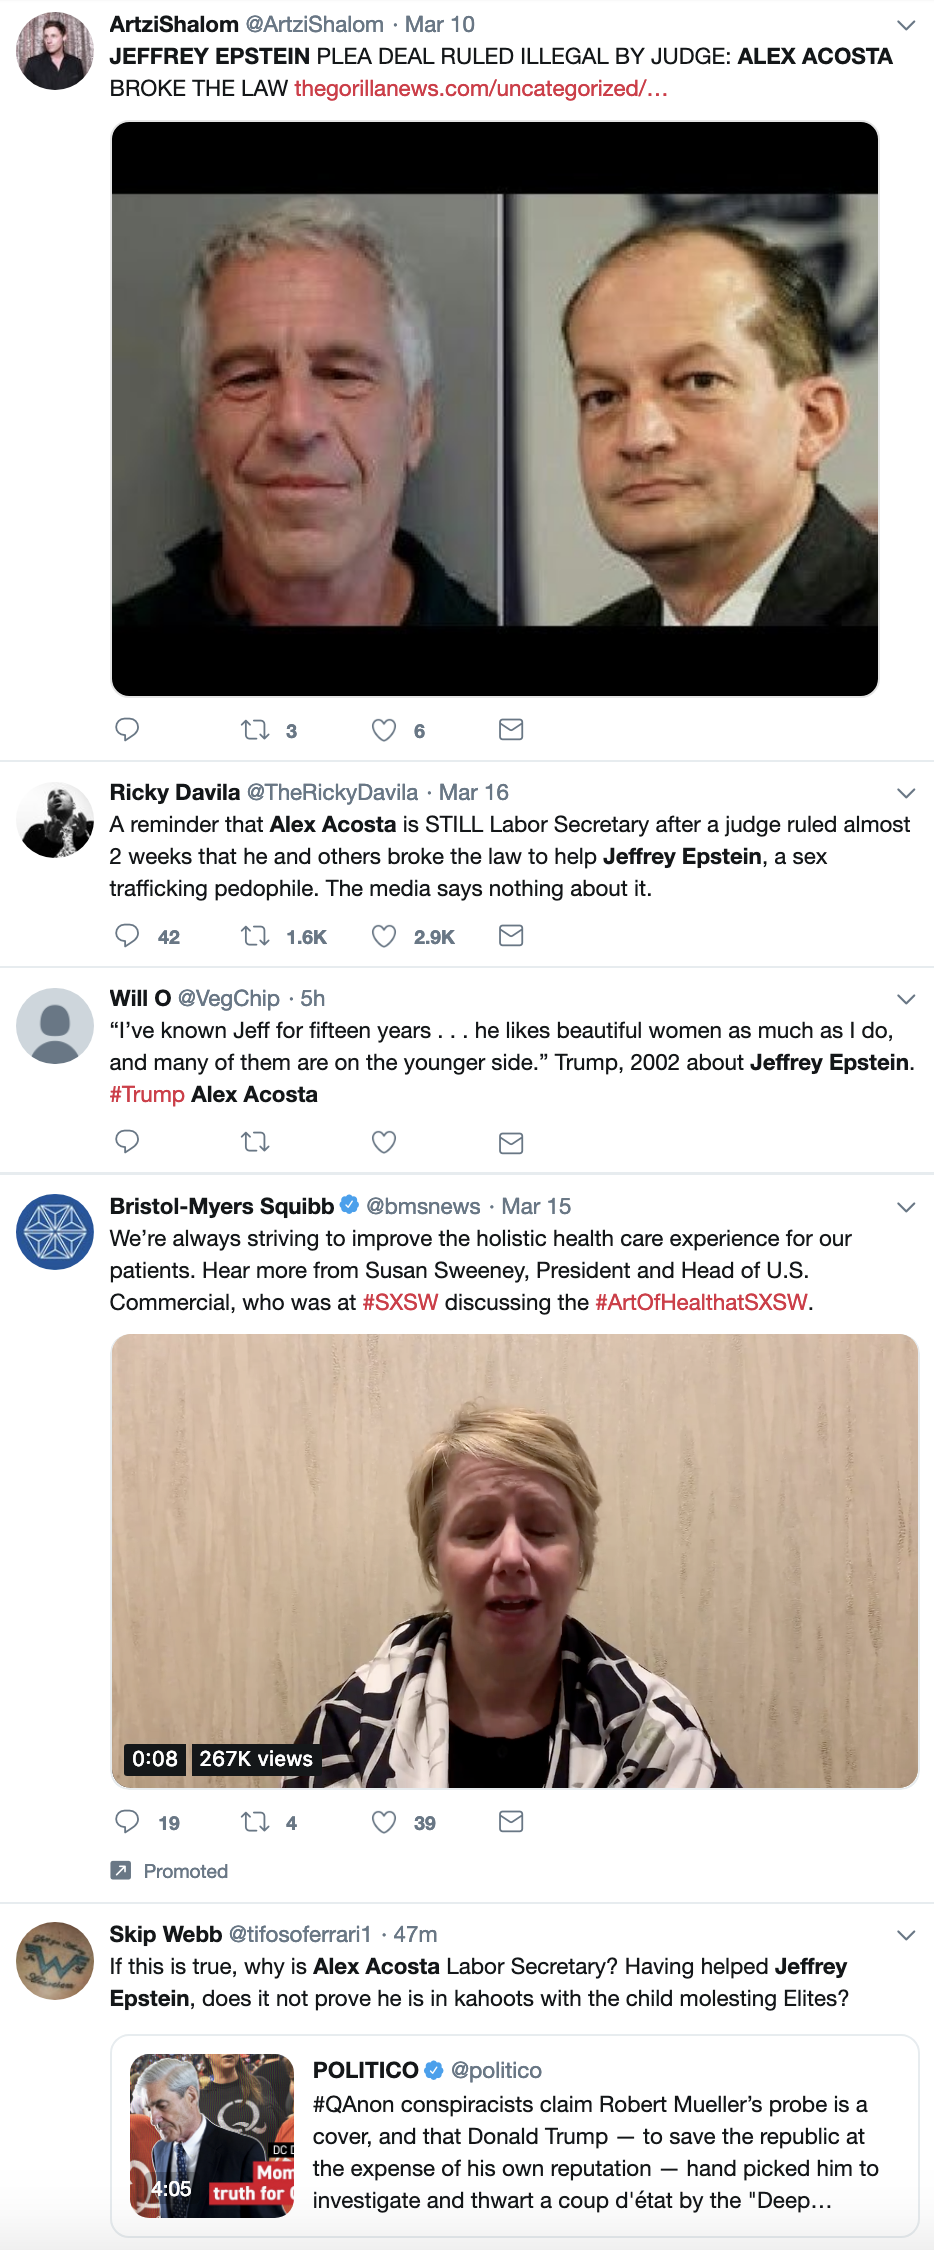 Screen-Shot-2019-03-19-at-1.21.13-PM Republican Accused Of Raping Unconscious Woman, Resigns Instantly Corruption Crime Donald Trump Feminism Politics Sexual Assault/Rape Top Stories